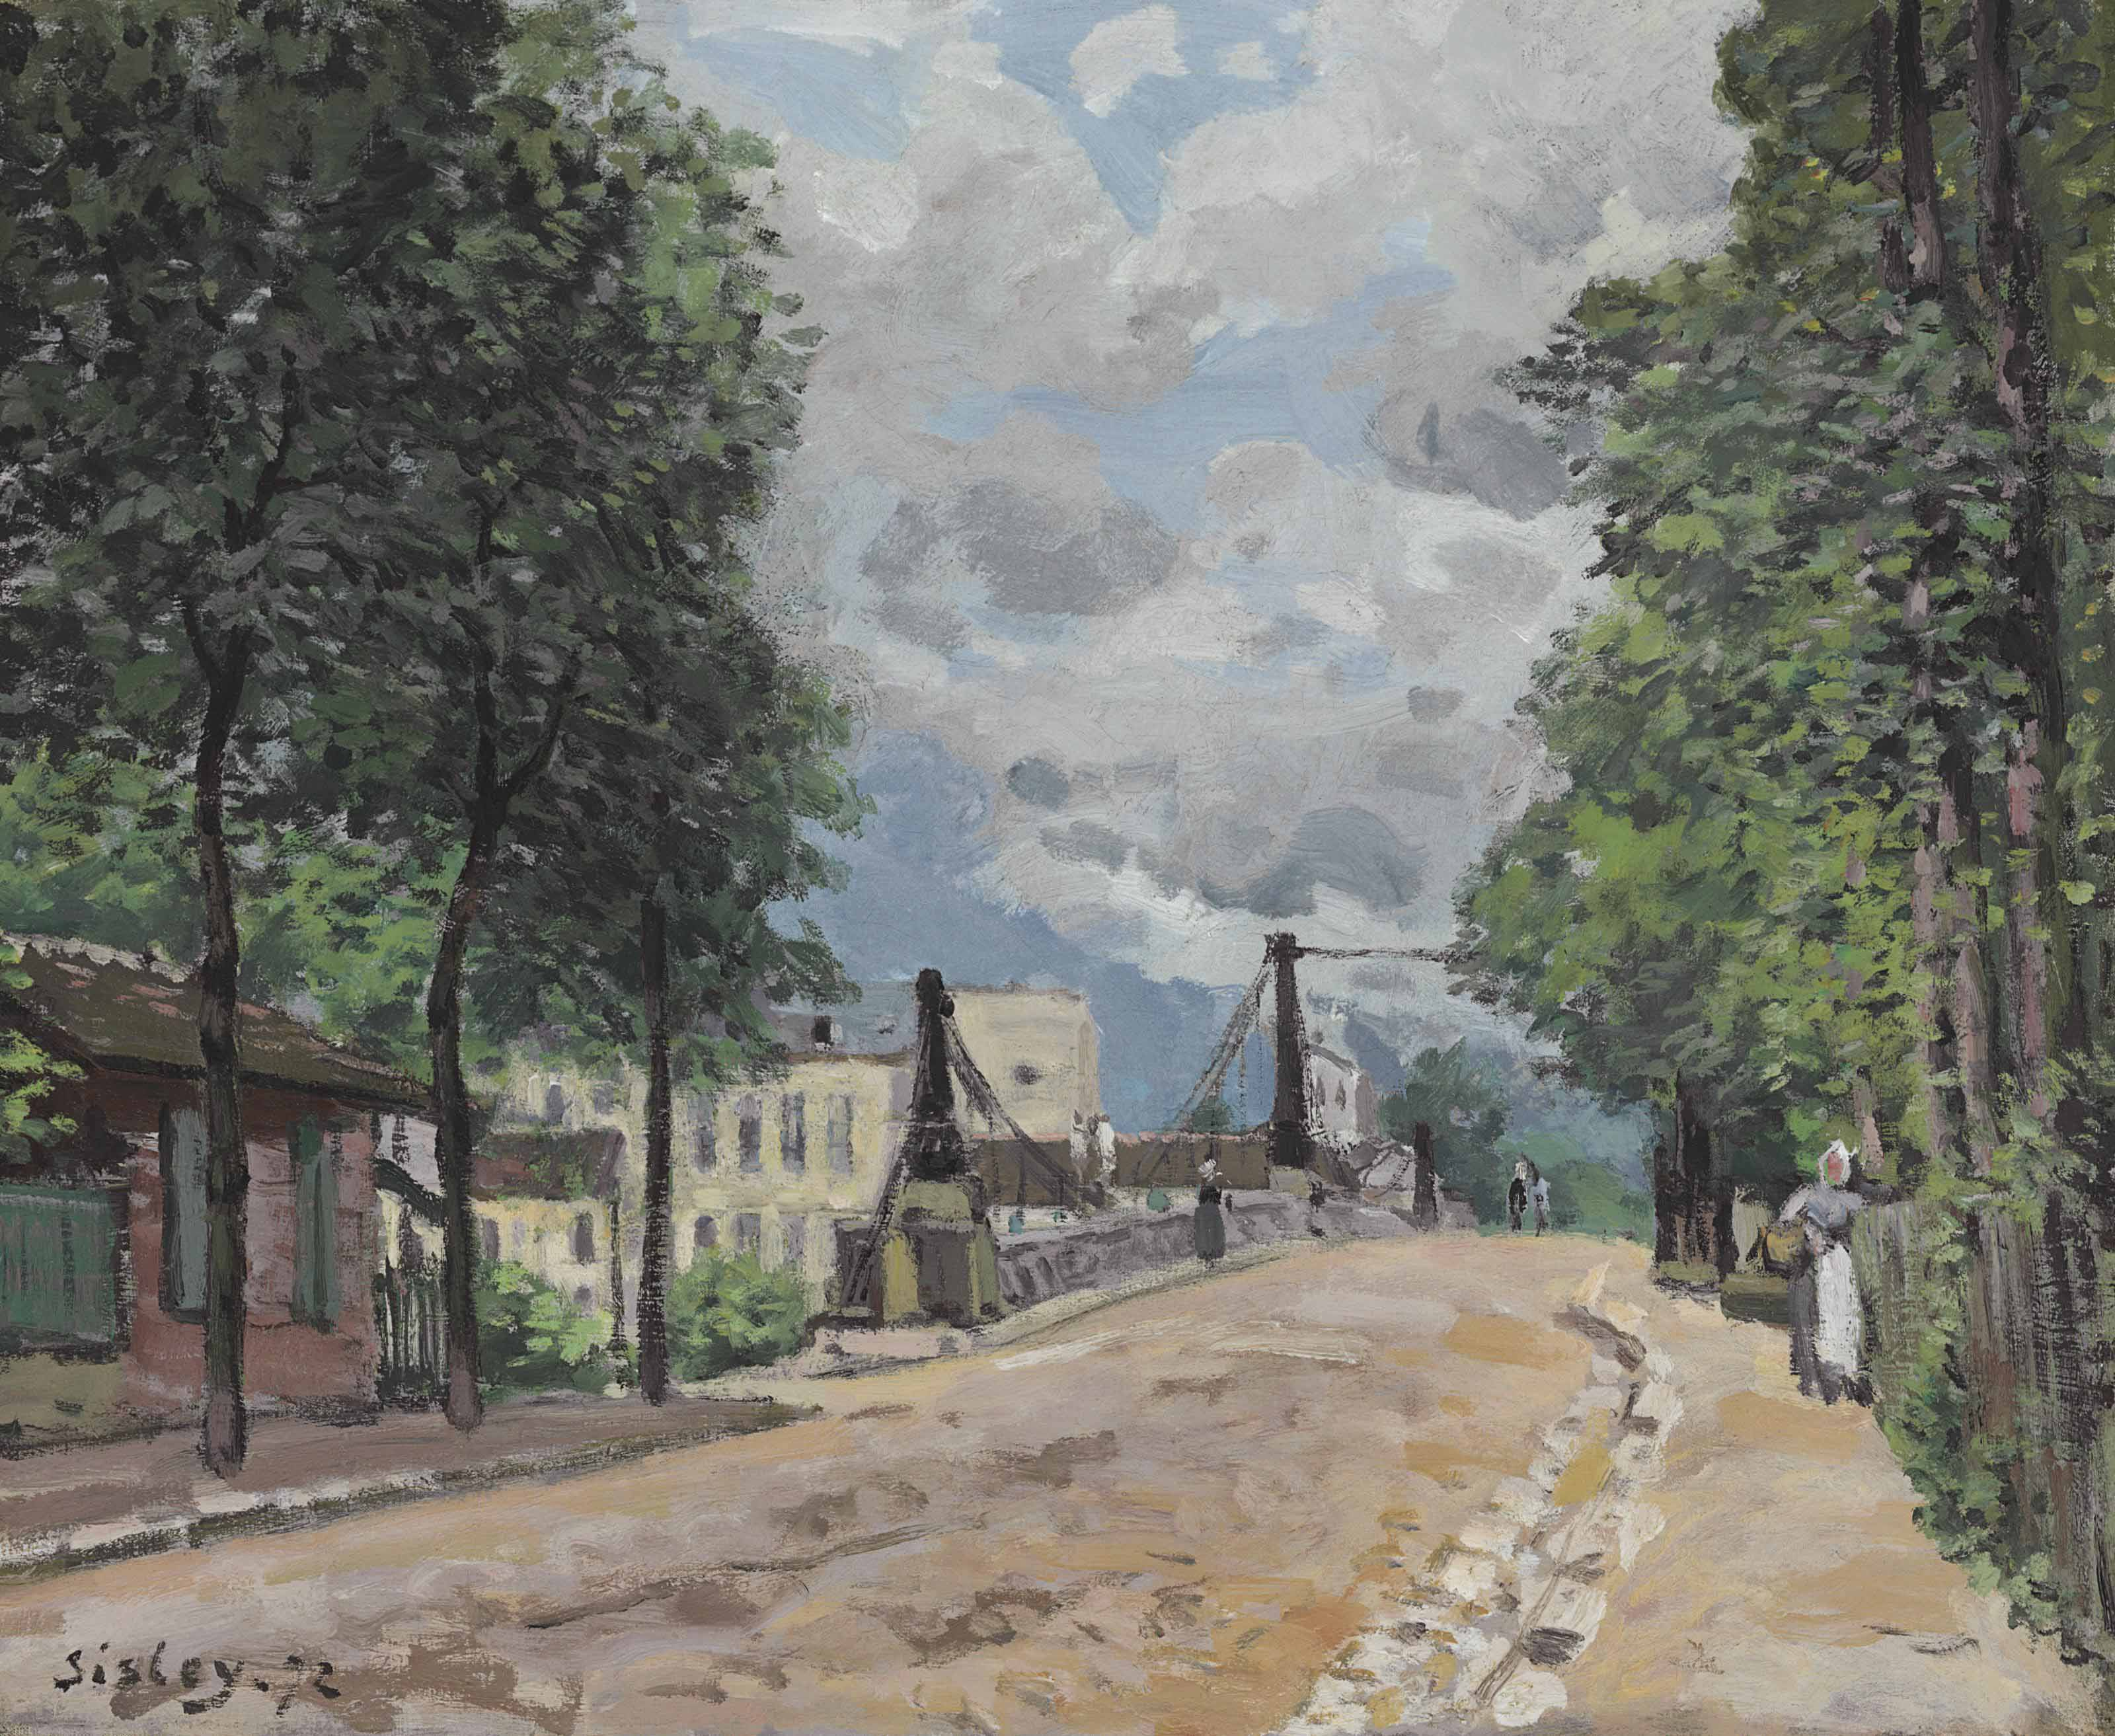 https://www.christies.com/img/LotImages/2013/NYR/2013_NYR_02782_0004_000(alfred_sisley_la_route_de_gennevilliers).jpg